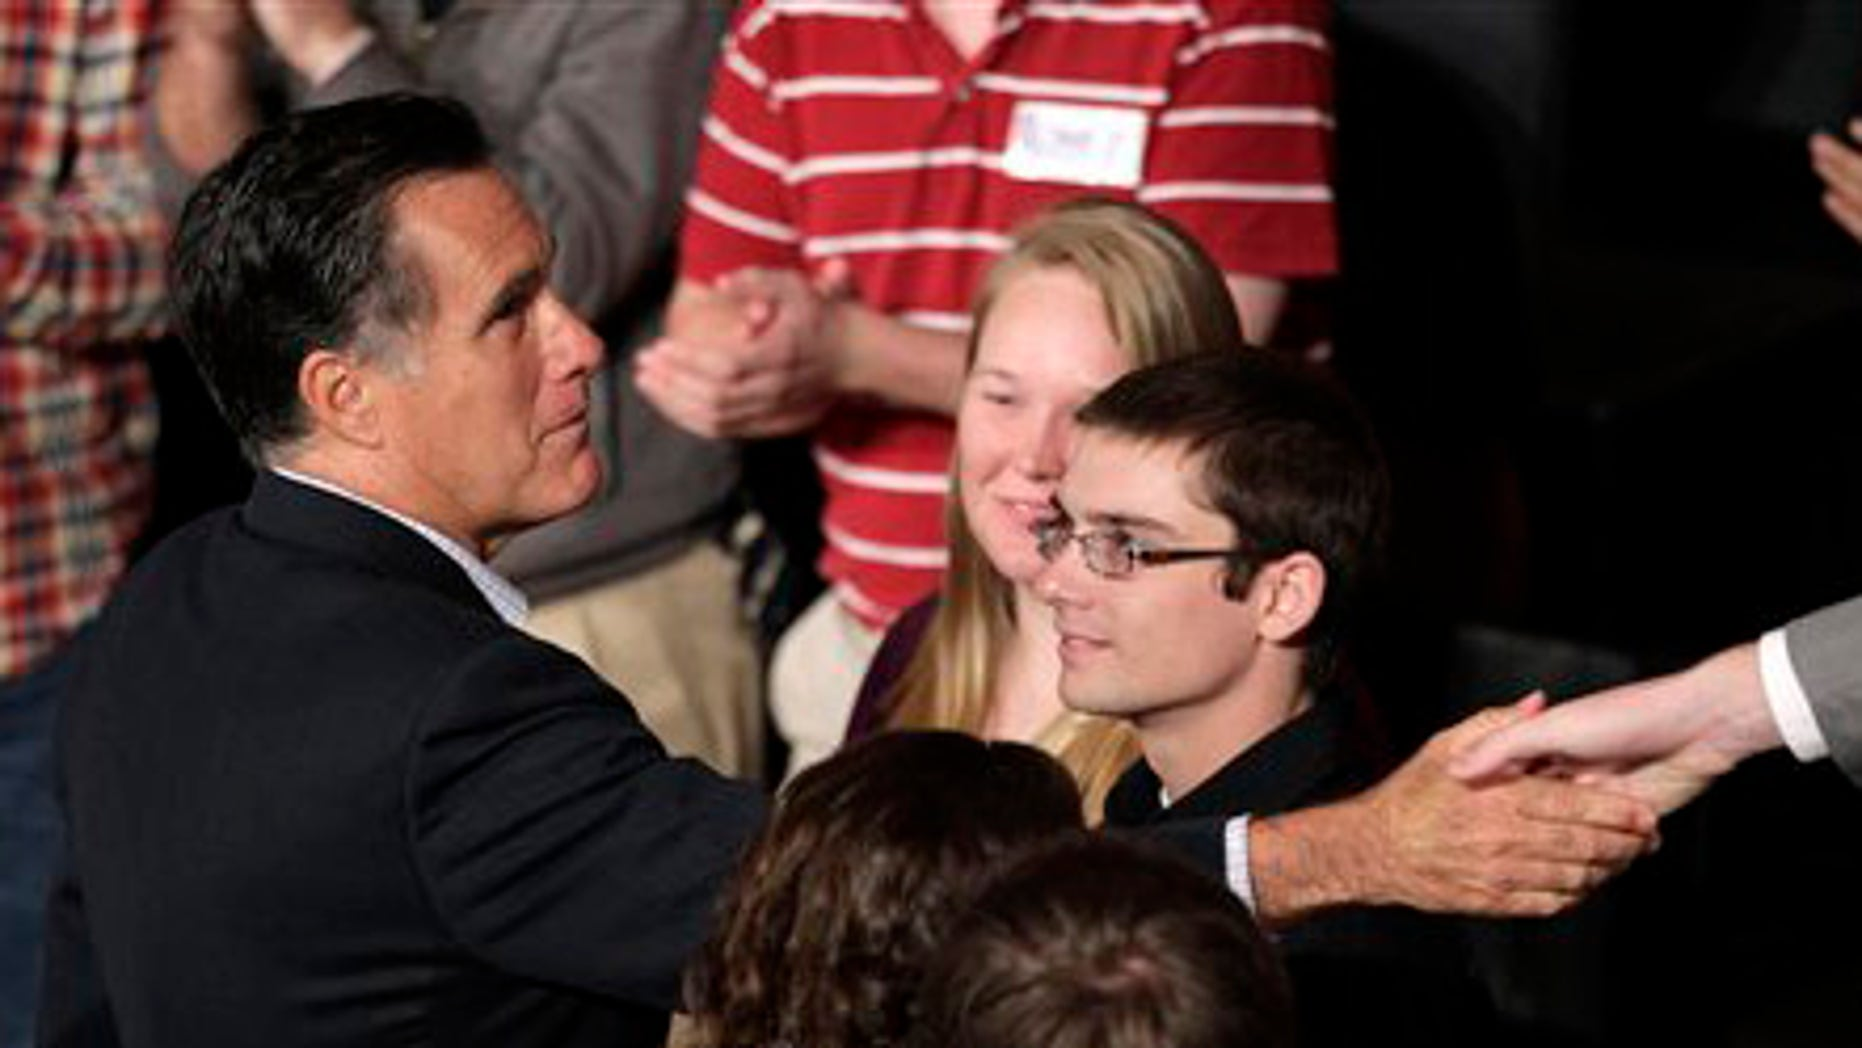 Friday, April 27, 2012: Mitt Romney shakes hands with students at Otterbein University in Westerville, Ohio.